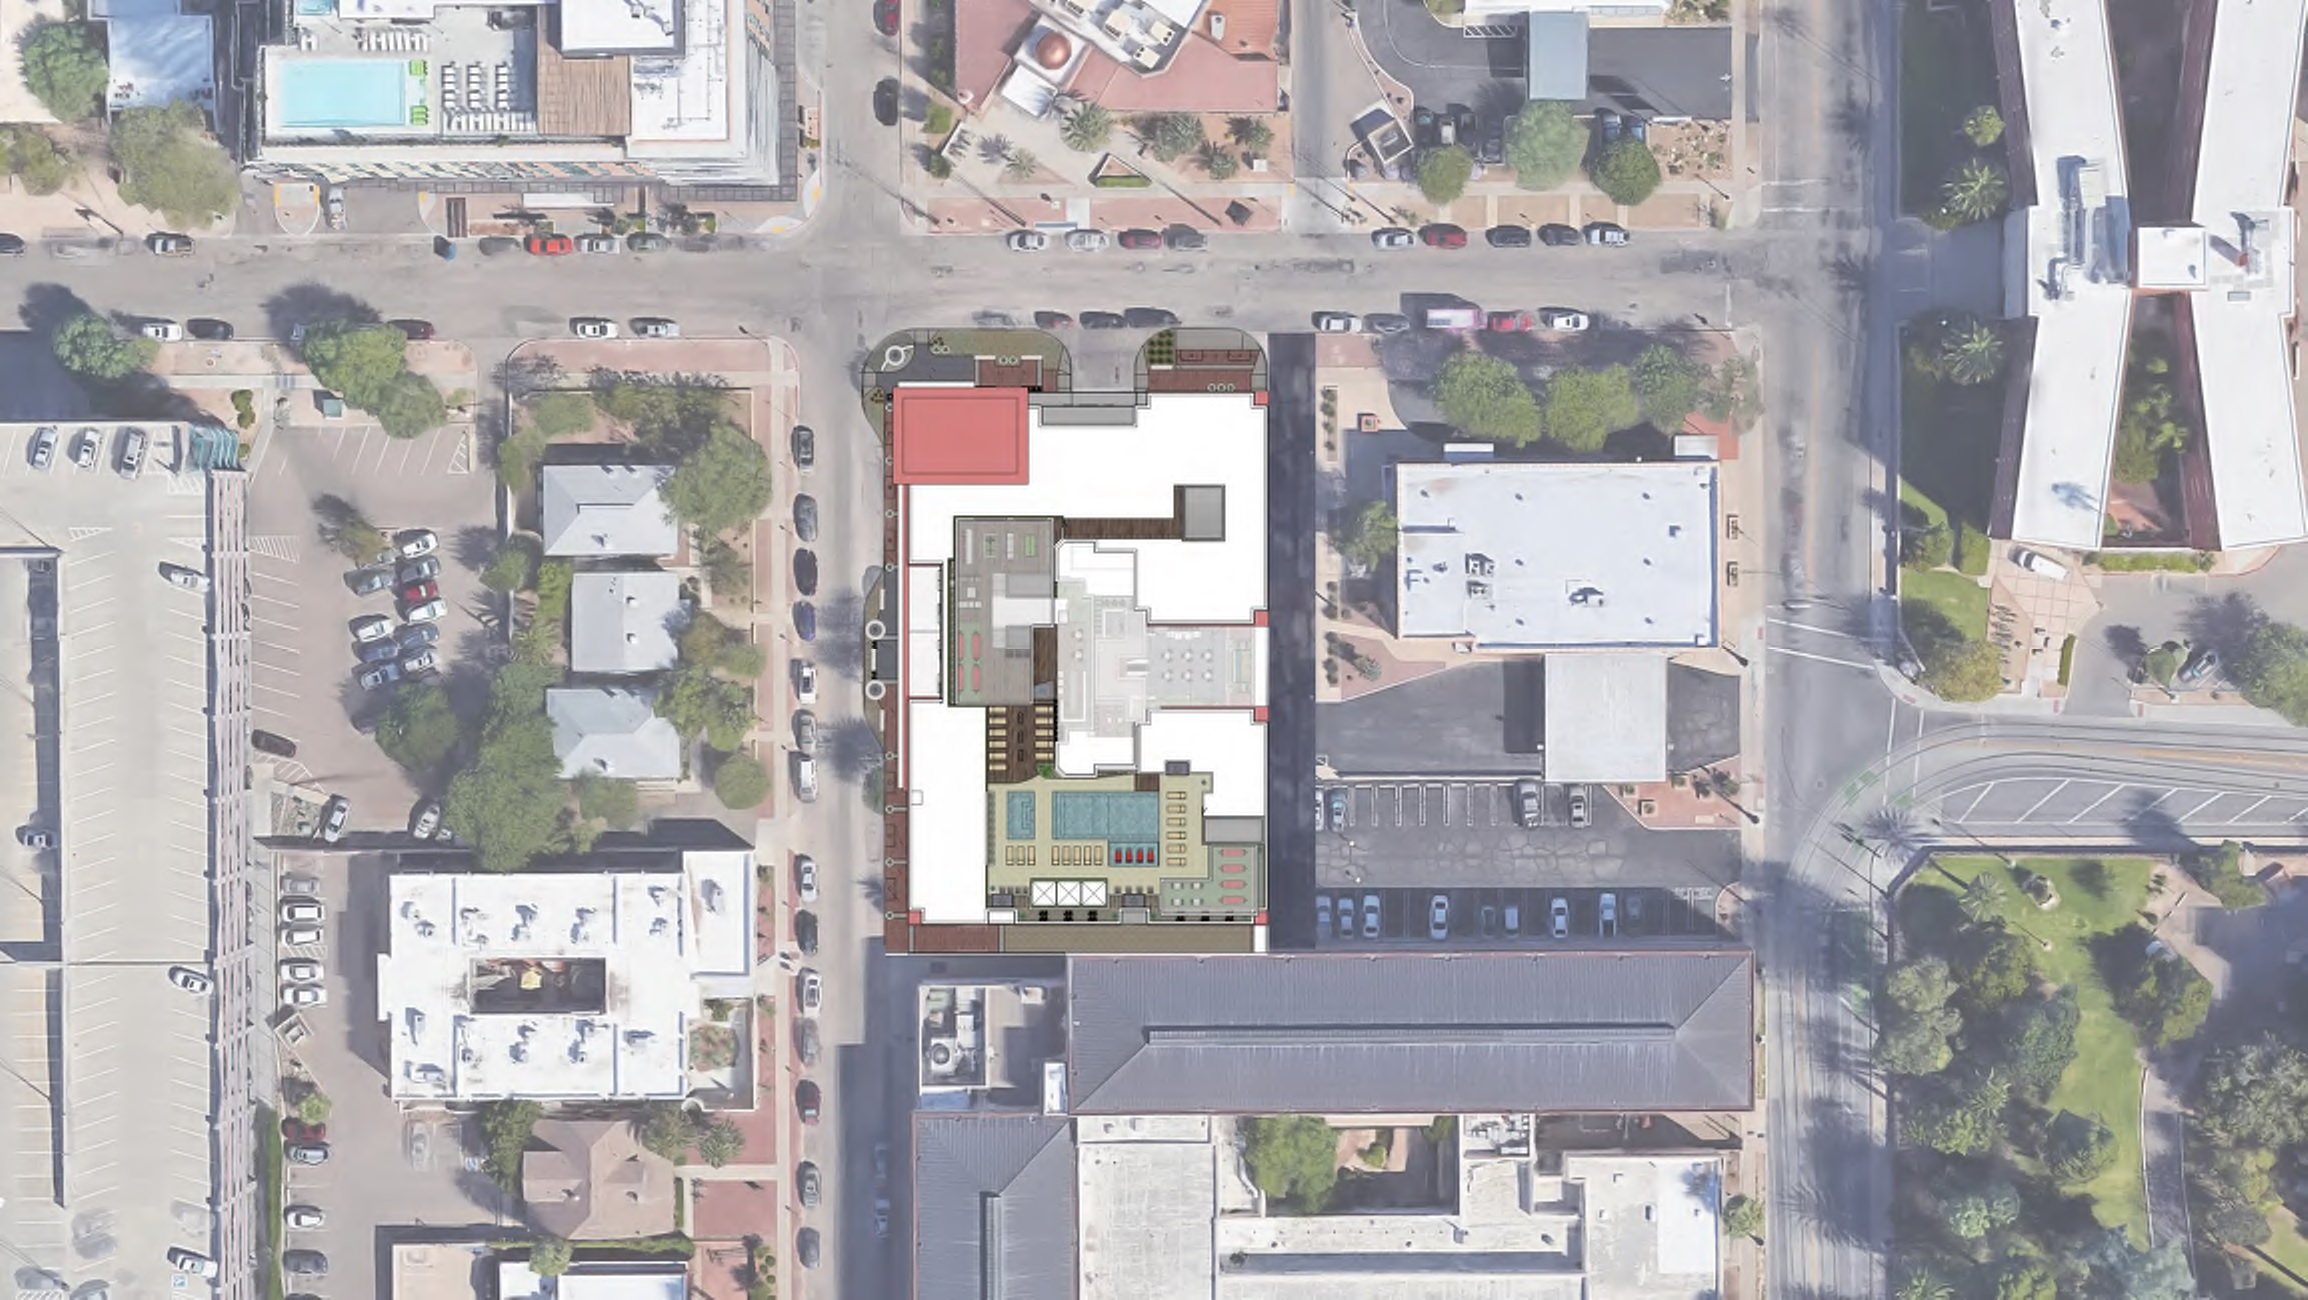 The Next Midrise Student Housing Building Looks To Be Beginning Construction Hoping For A Completion Before The 2018 Fall Semester Tibo Tucson Improvement Blog